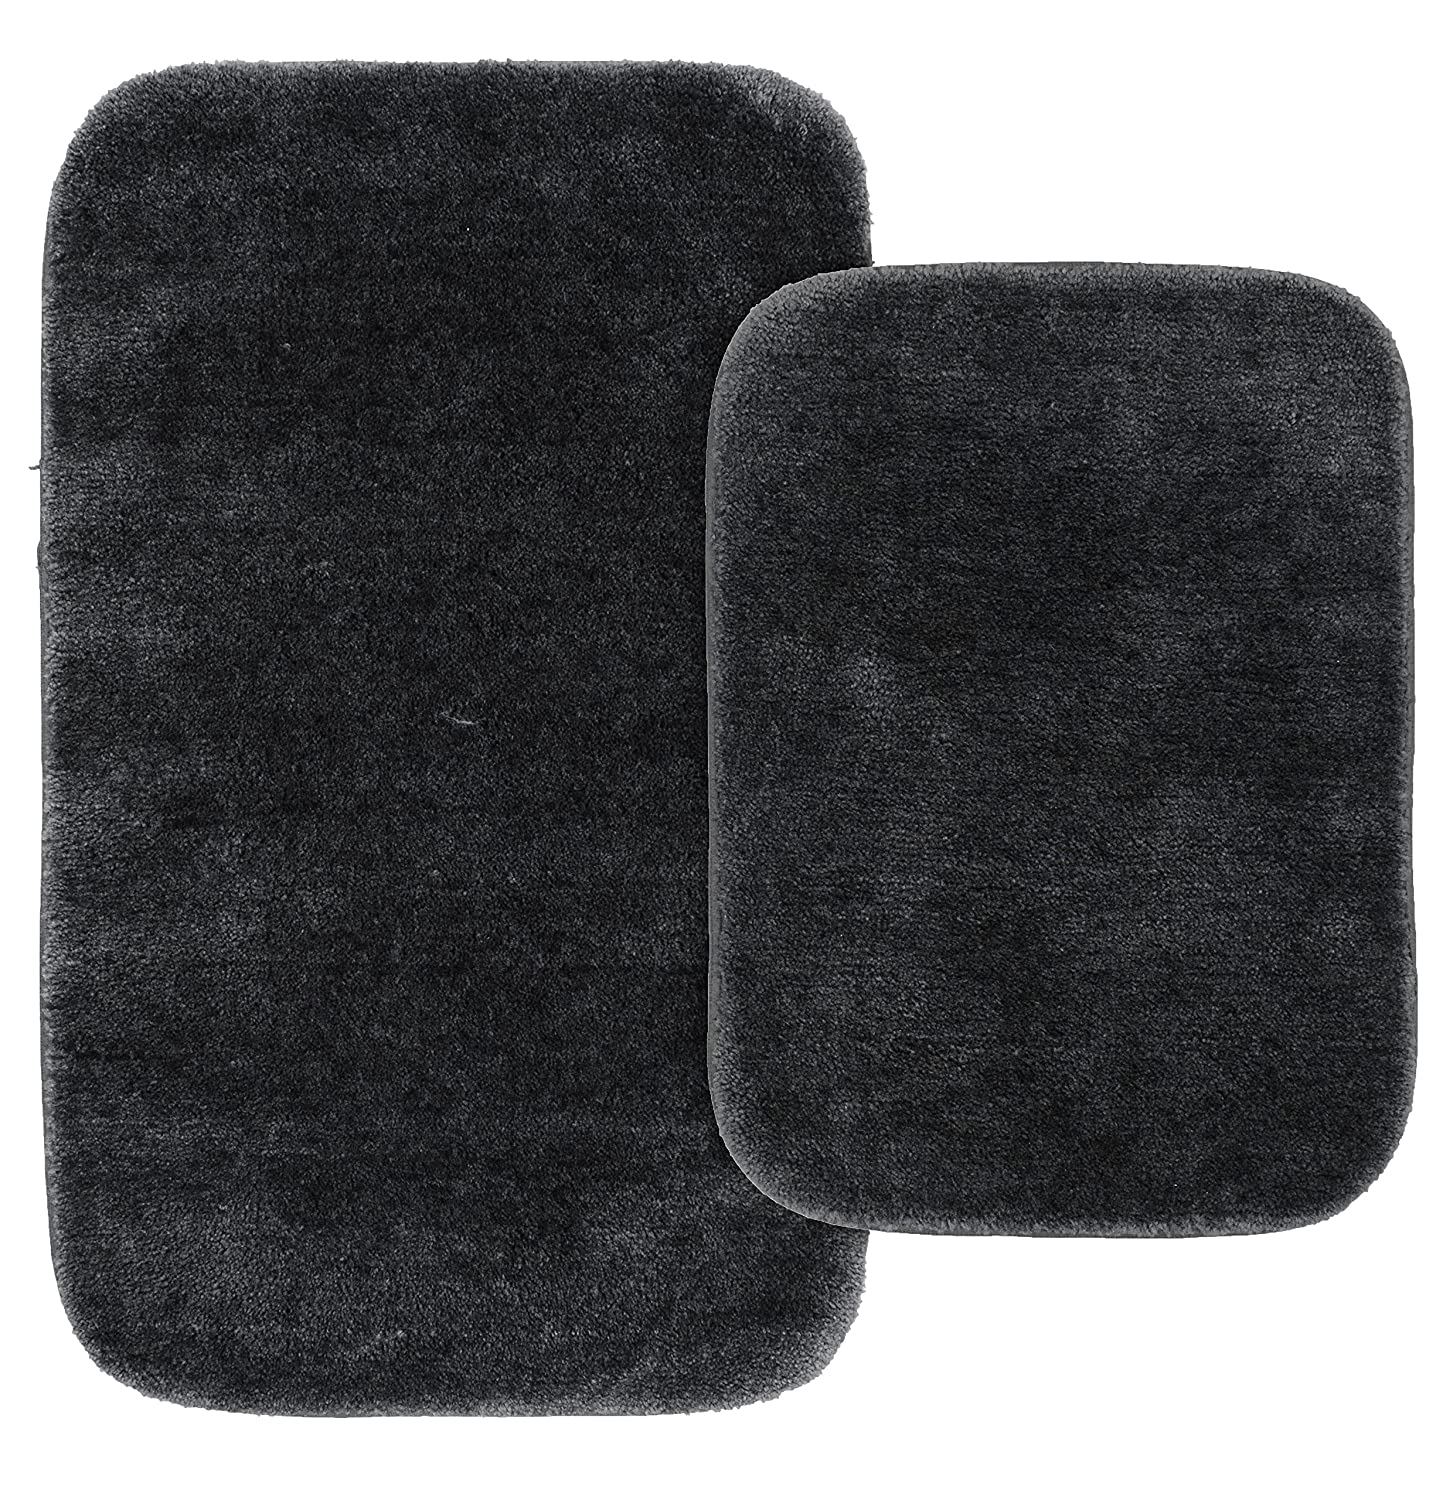 Garland Rug BA010W2P04K2 Traditional Bath Rug Set, 2-Piece Set, Navy